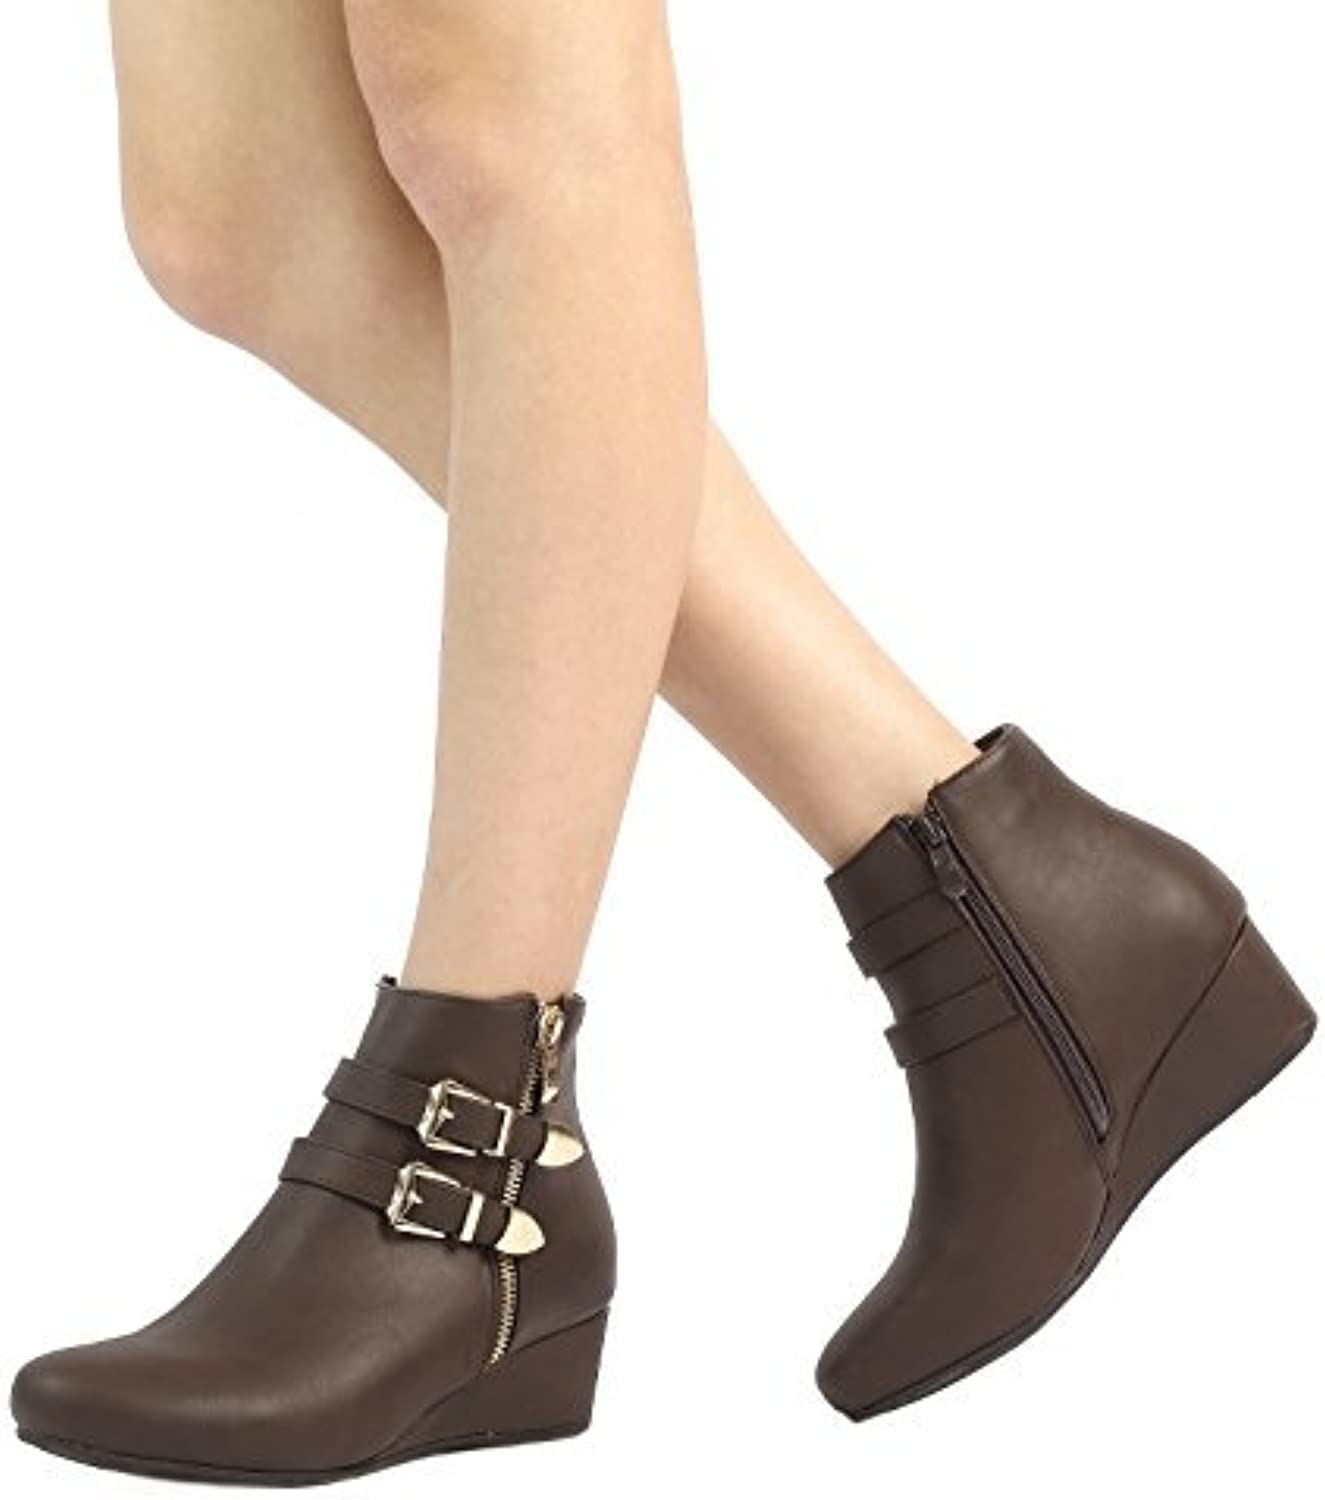 DREAM PAIRS New Women's GHILE Fashion Double Buckle Side Zipper Platform Wedge Heel shoes Booties